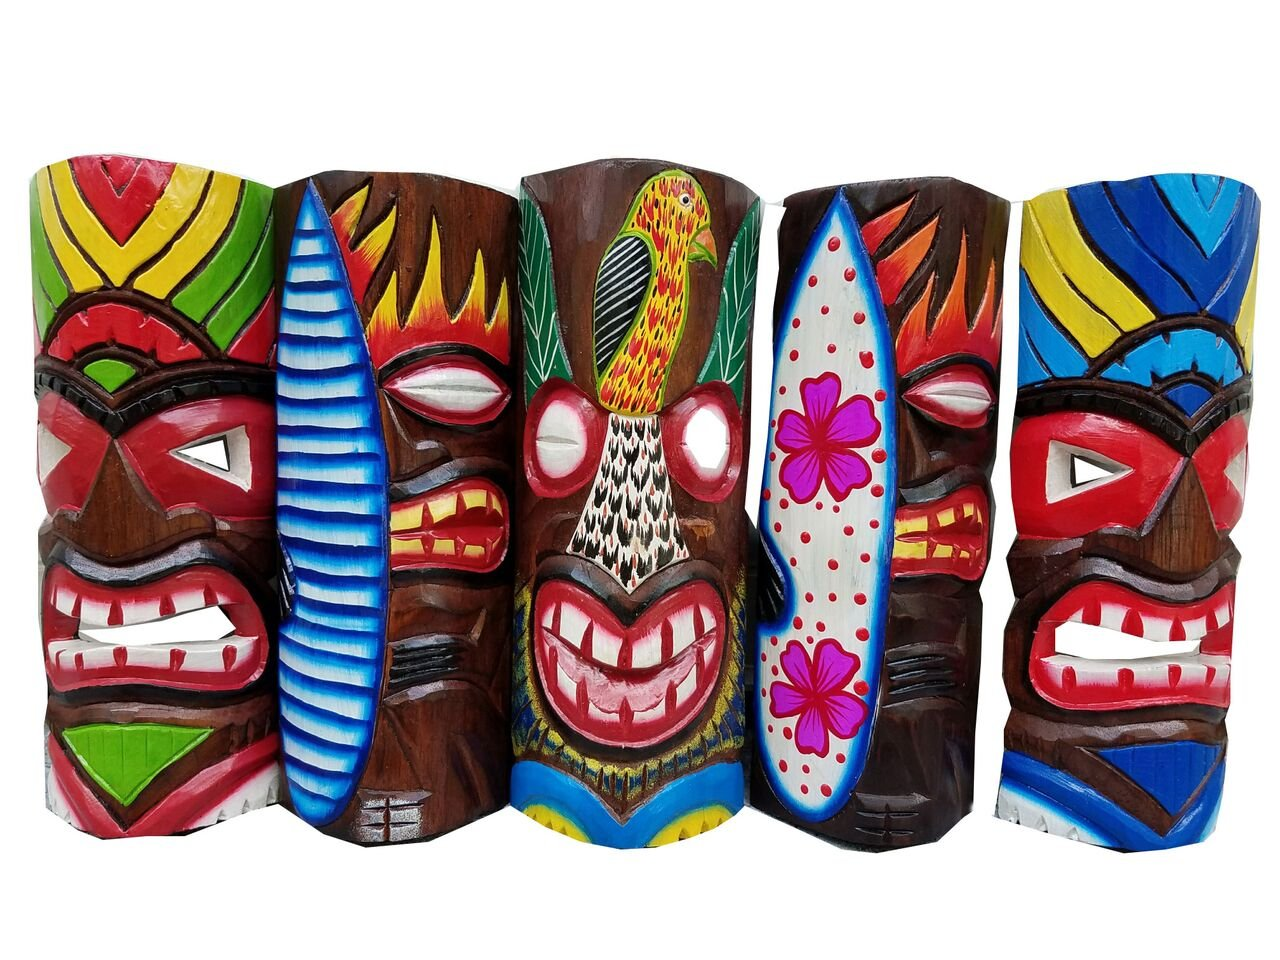 Set of (5) Vibrant Wooden Handcarved 12'' Tall Tiki Masks Tropical Wall Decor! by All Seas Imports